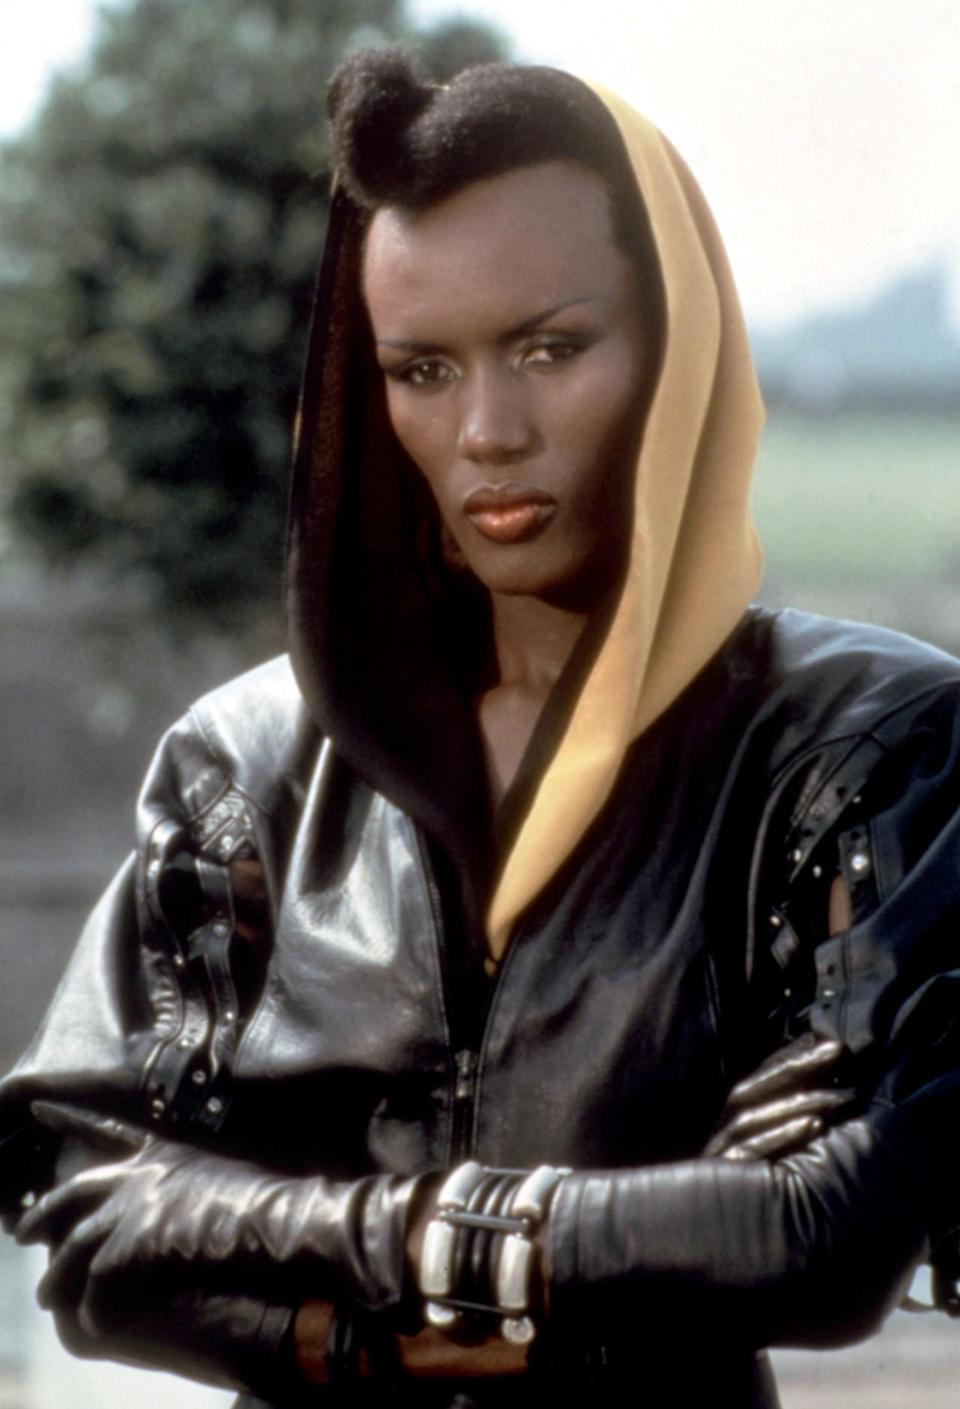 <p>As lover and henchwoman to industrialist Max Zorin (played by Christopher Walken), it's easy to understand why her name is May Day — her superhuman strength will have you begging for mercy. And yes, Grace Jones is just as cool on the big screen as she is though her music, rocking purple eyeshadow, headscarves, and killer stilettos with her edgy androgynous look. <i>Photo: Everett Collection</i></p>